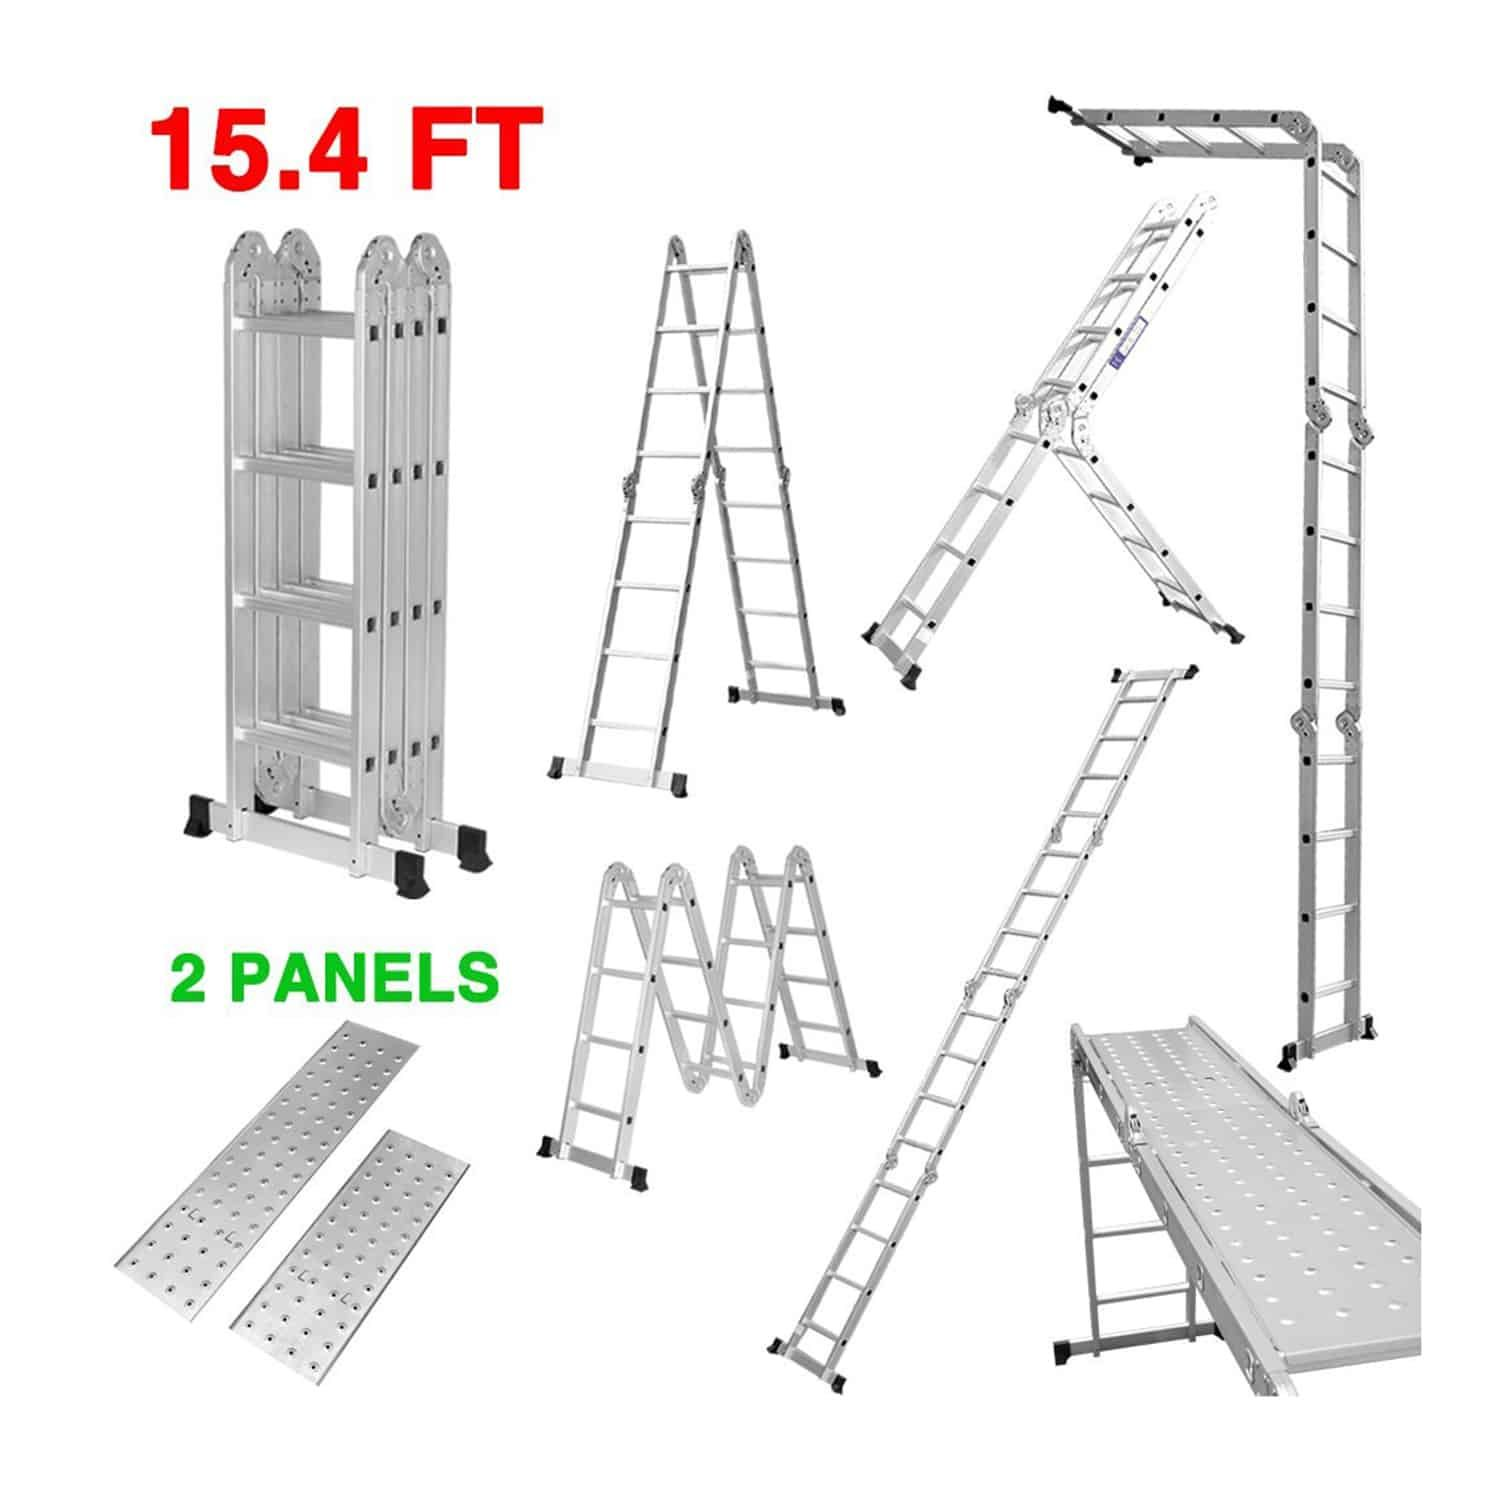 Aluminum Telescoping Ladder Telescopic Extension Ladder Multi Purpose Ladder Folding Ladder Locking Hinge